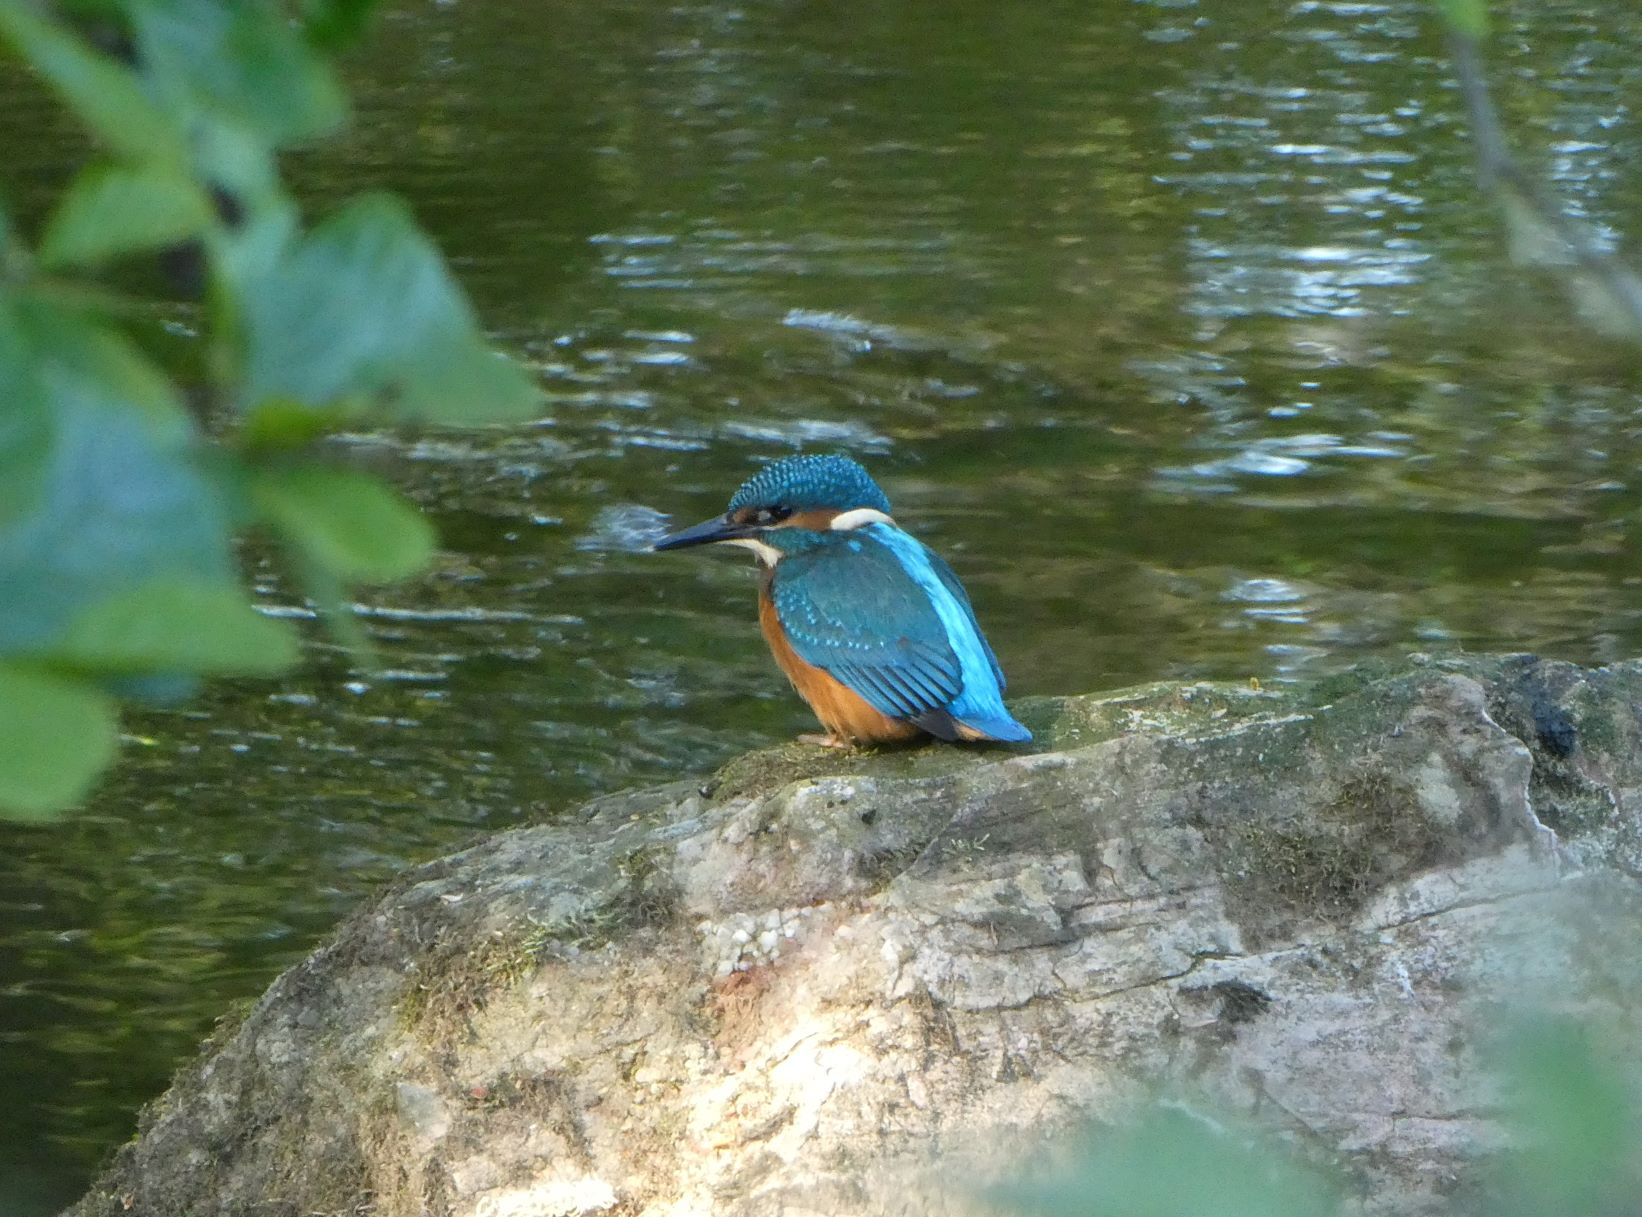 Bright blue and orange kingfisher standing on a rock at the river's edge